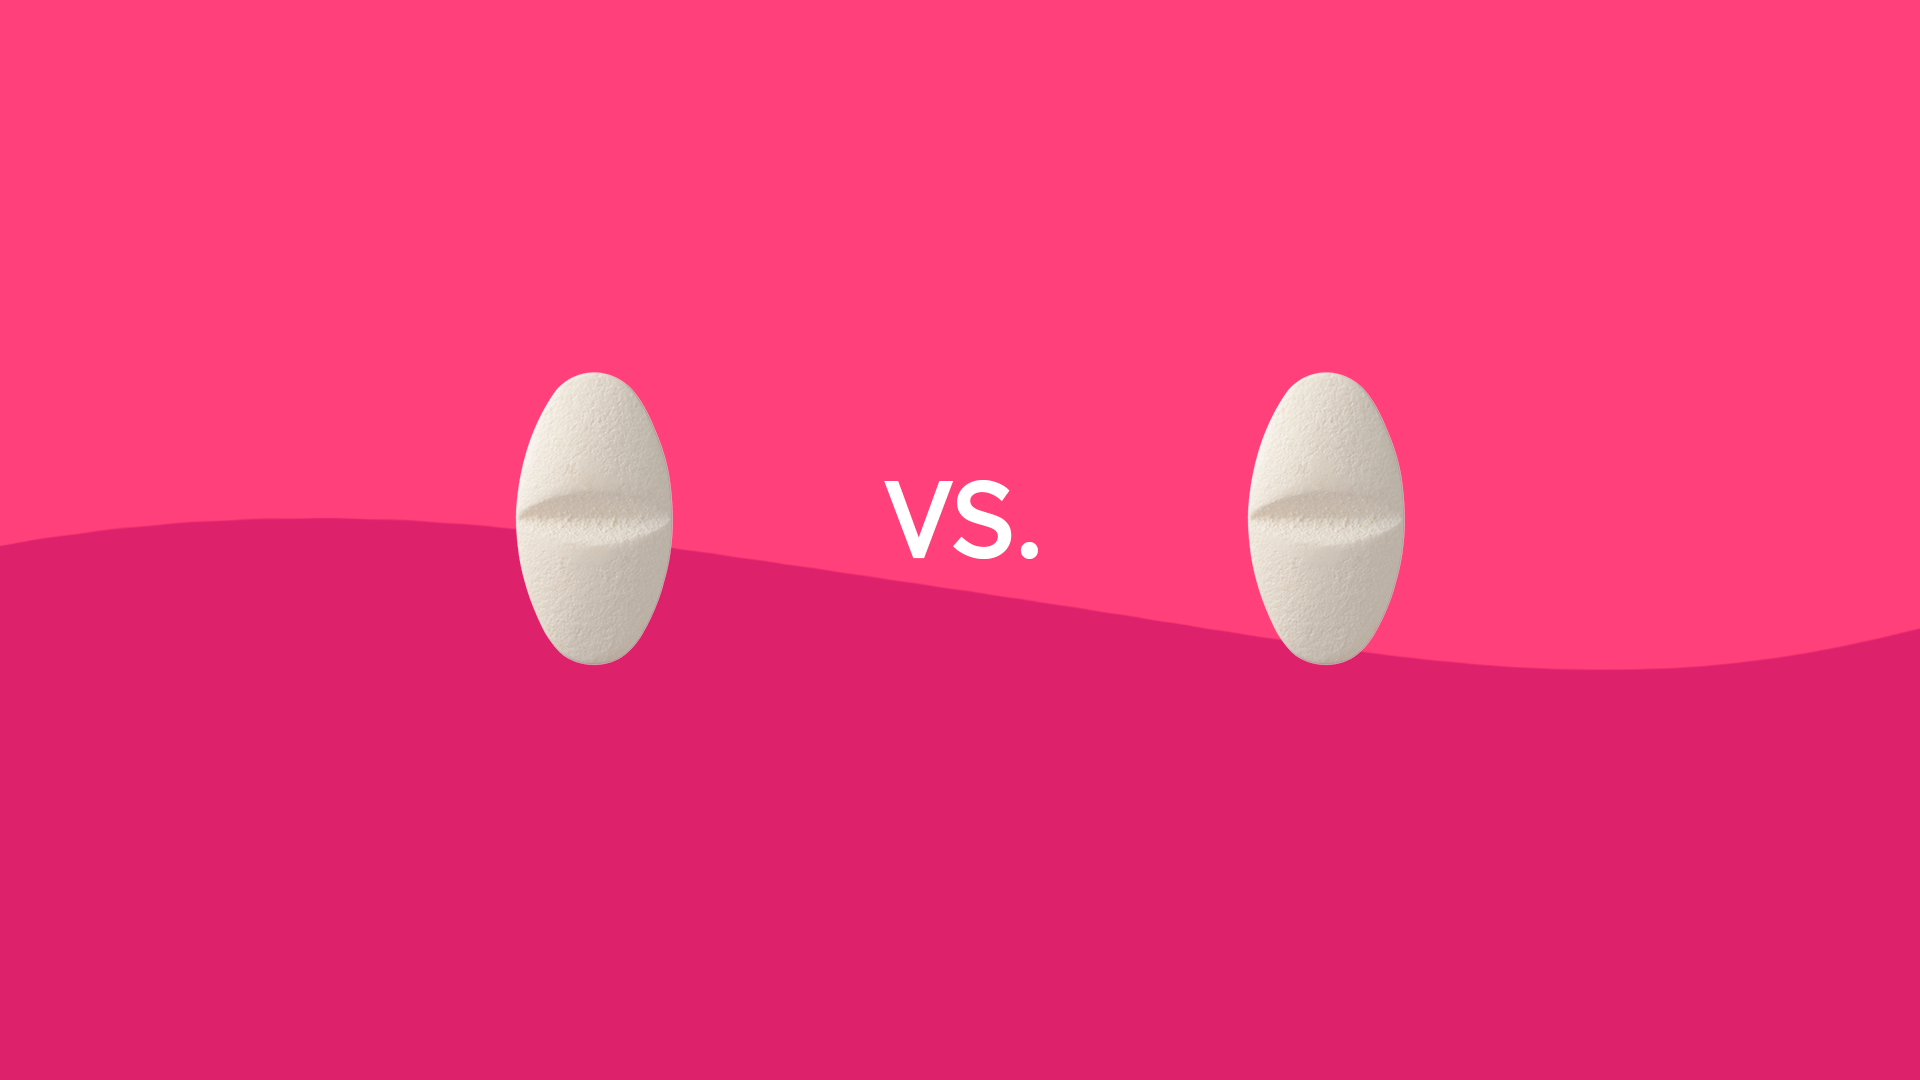 Zoloft vs. Xanax: Differences, similarities, and which is better for you